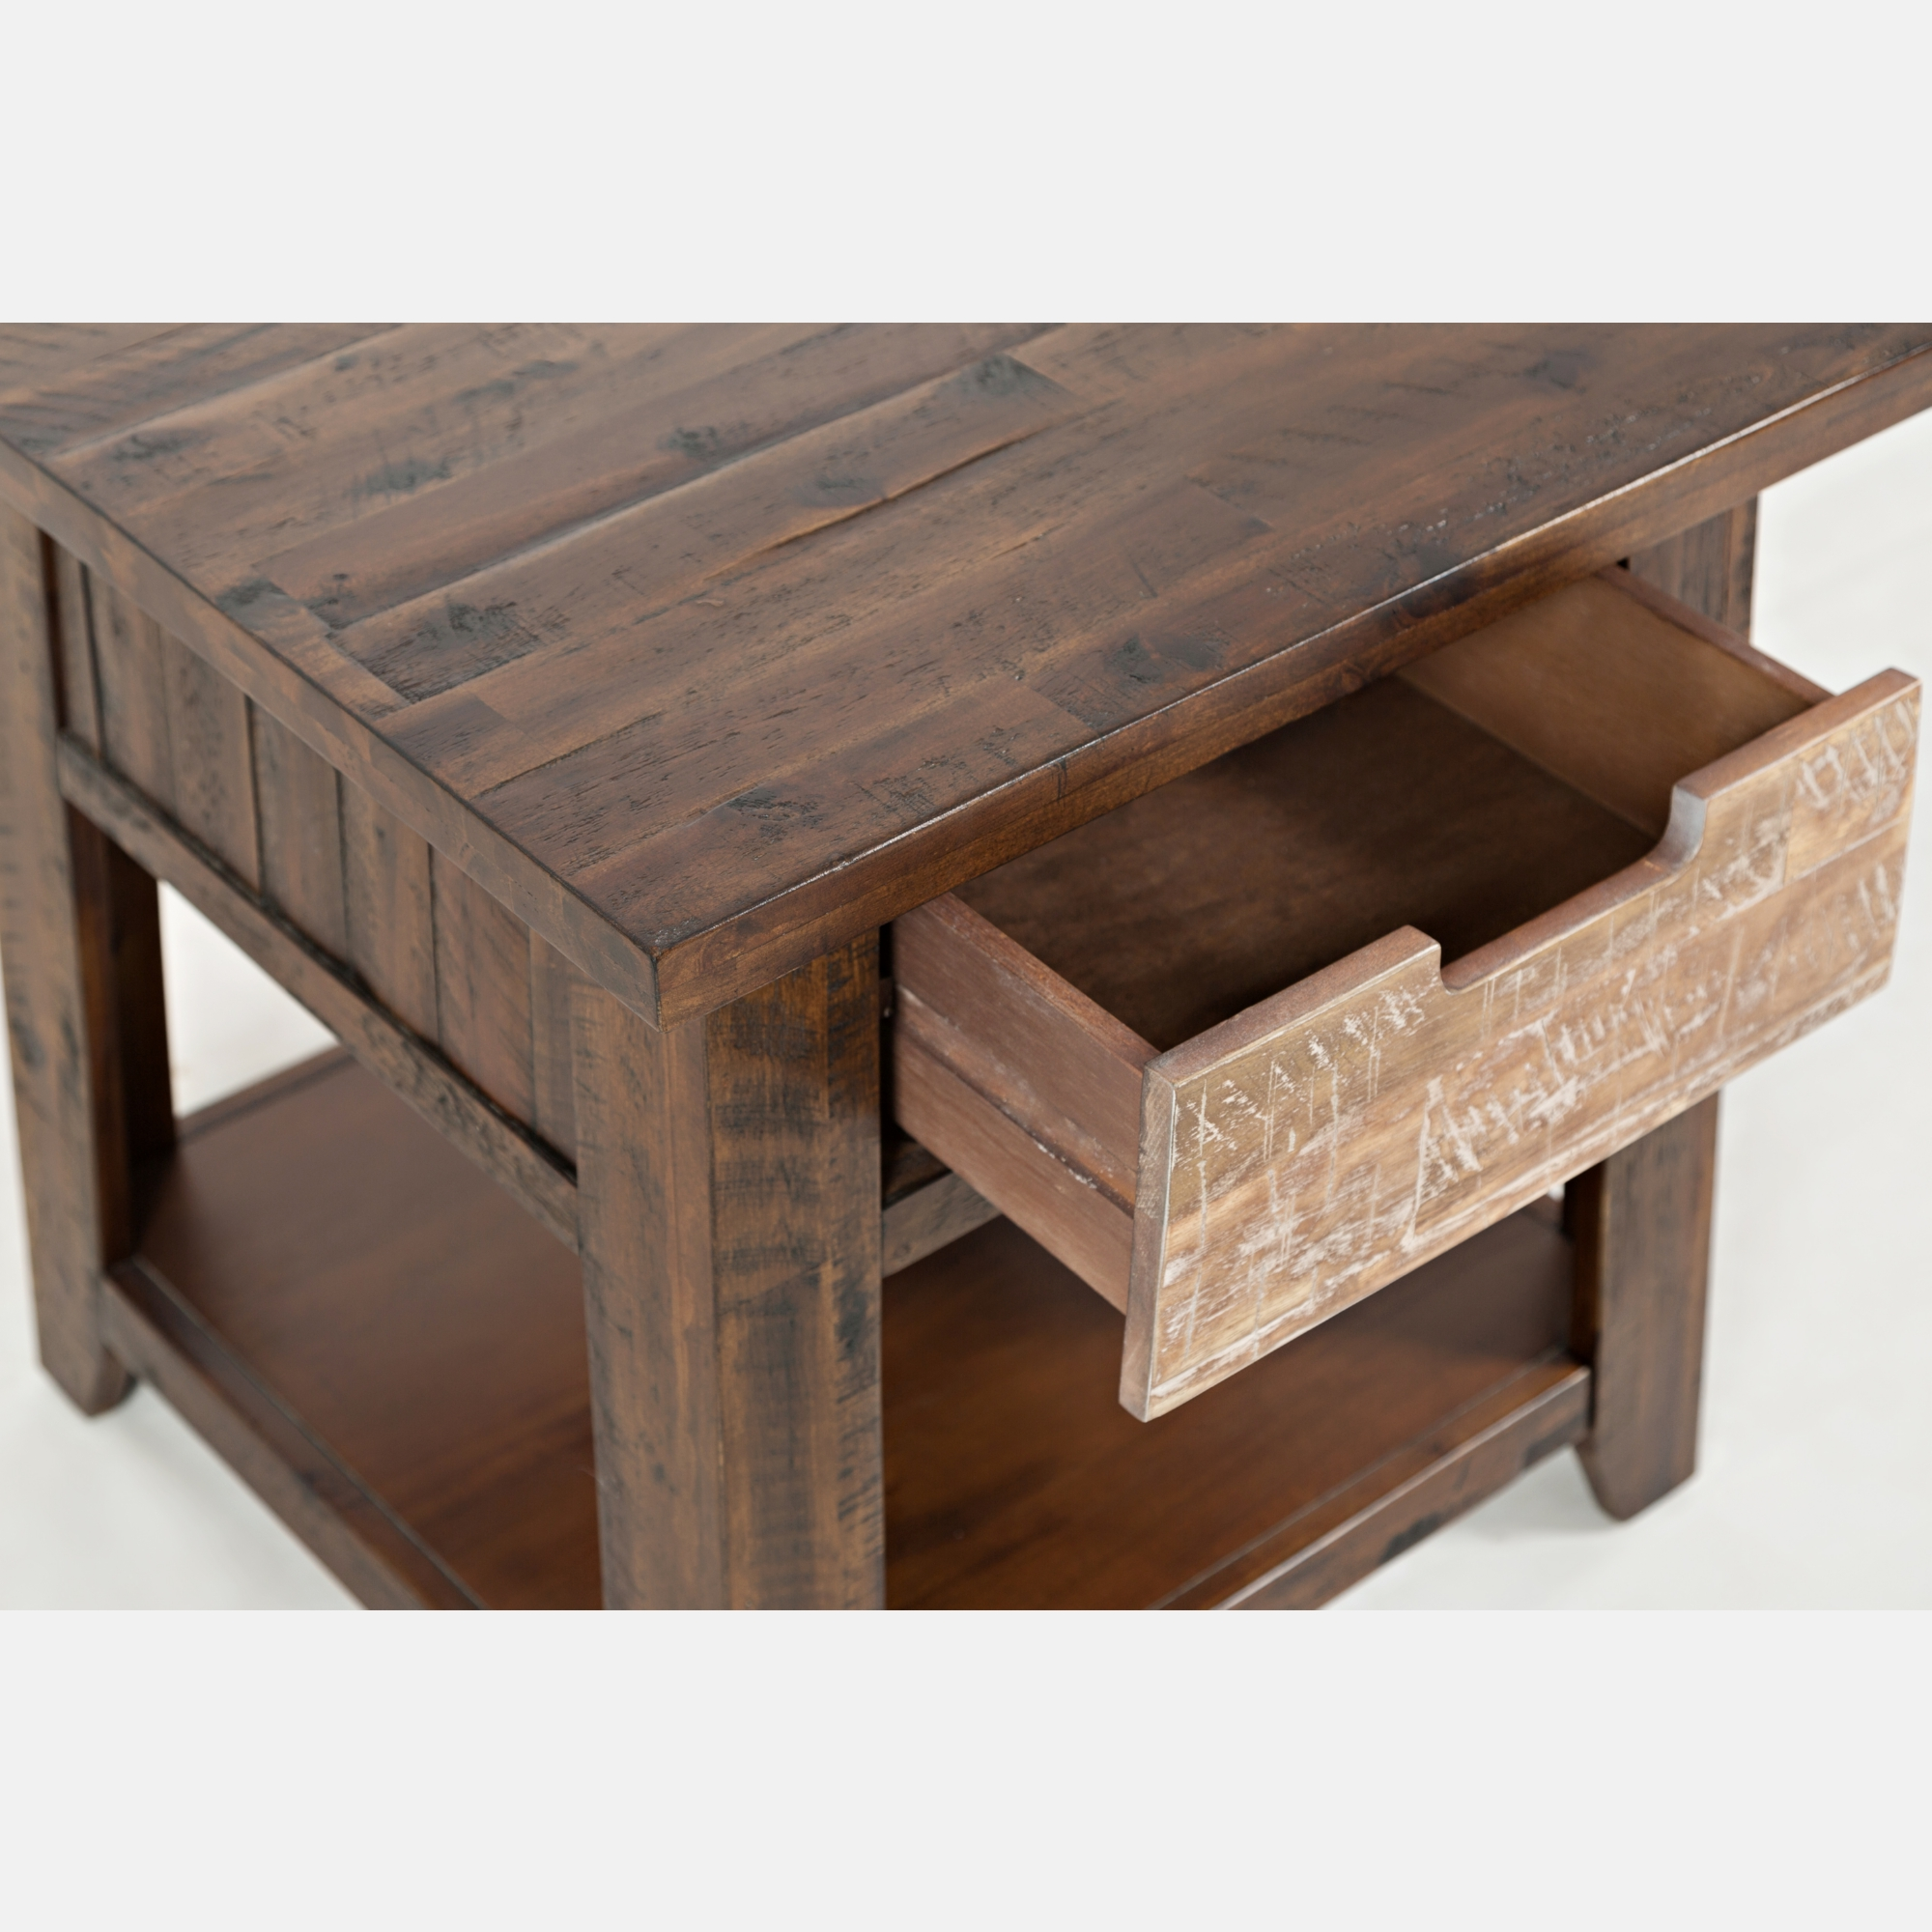 Jofran 1600 3 Painted Canyon End Table w Drawer & Shelf in